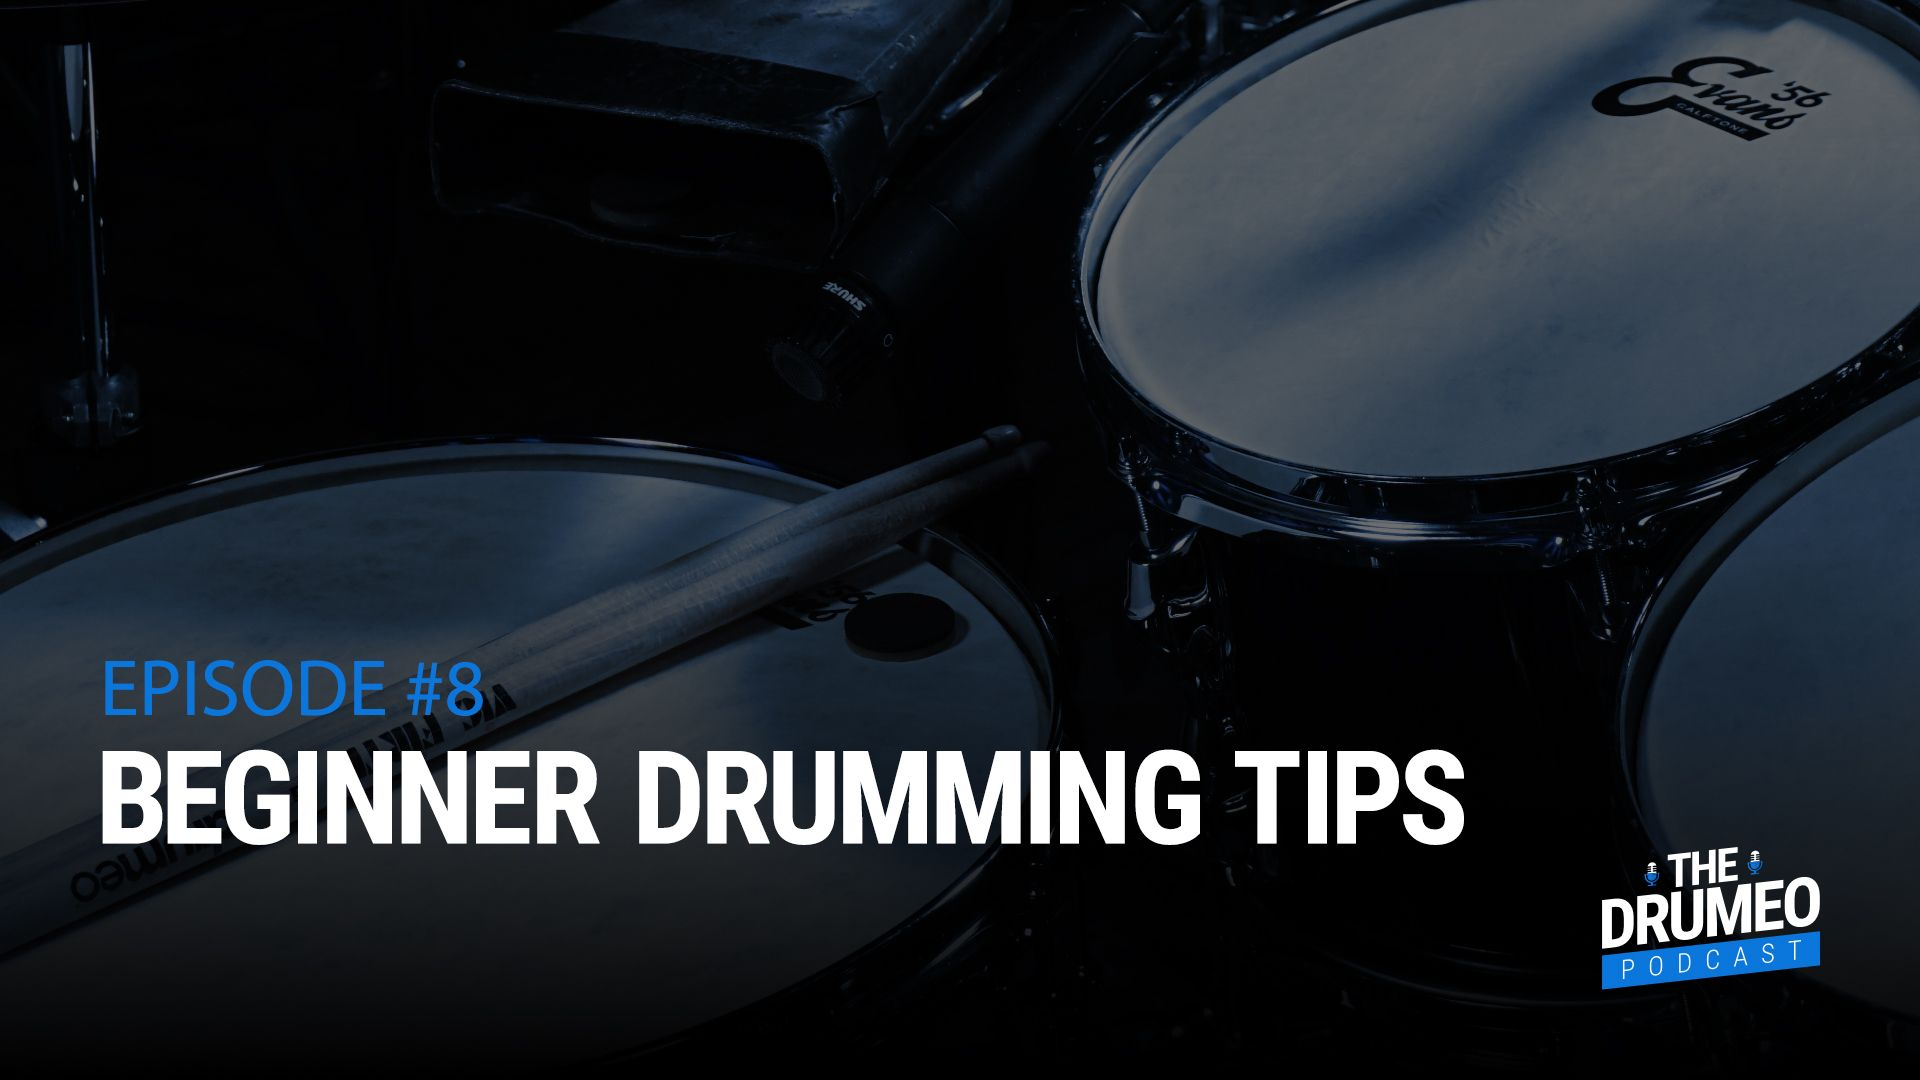 Beginner Drumming Tips With Images Acoustic Drum Podcasts Acoustic